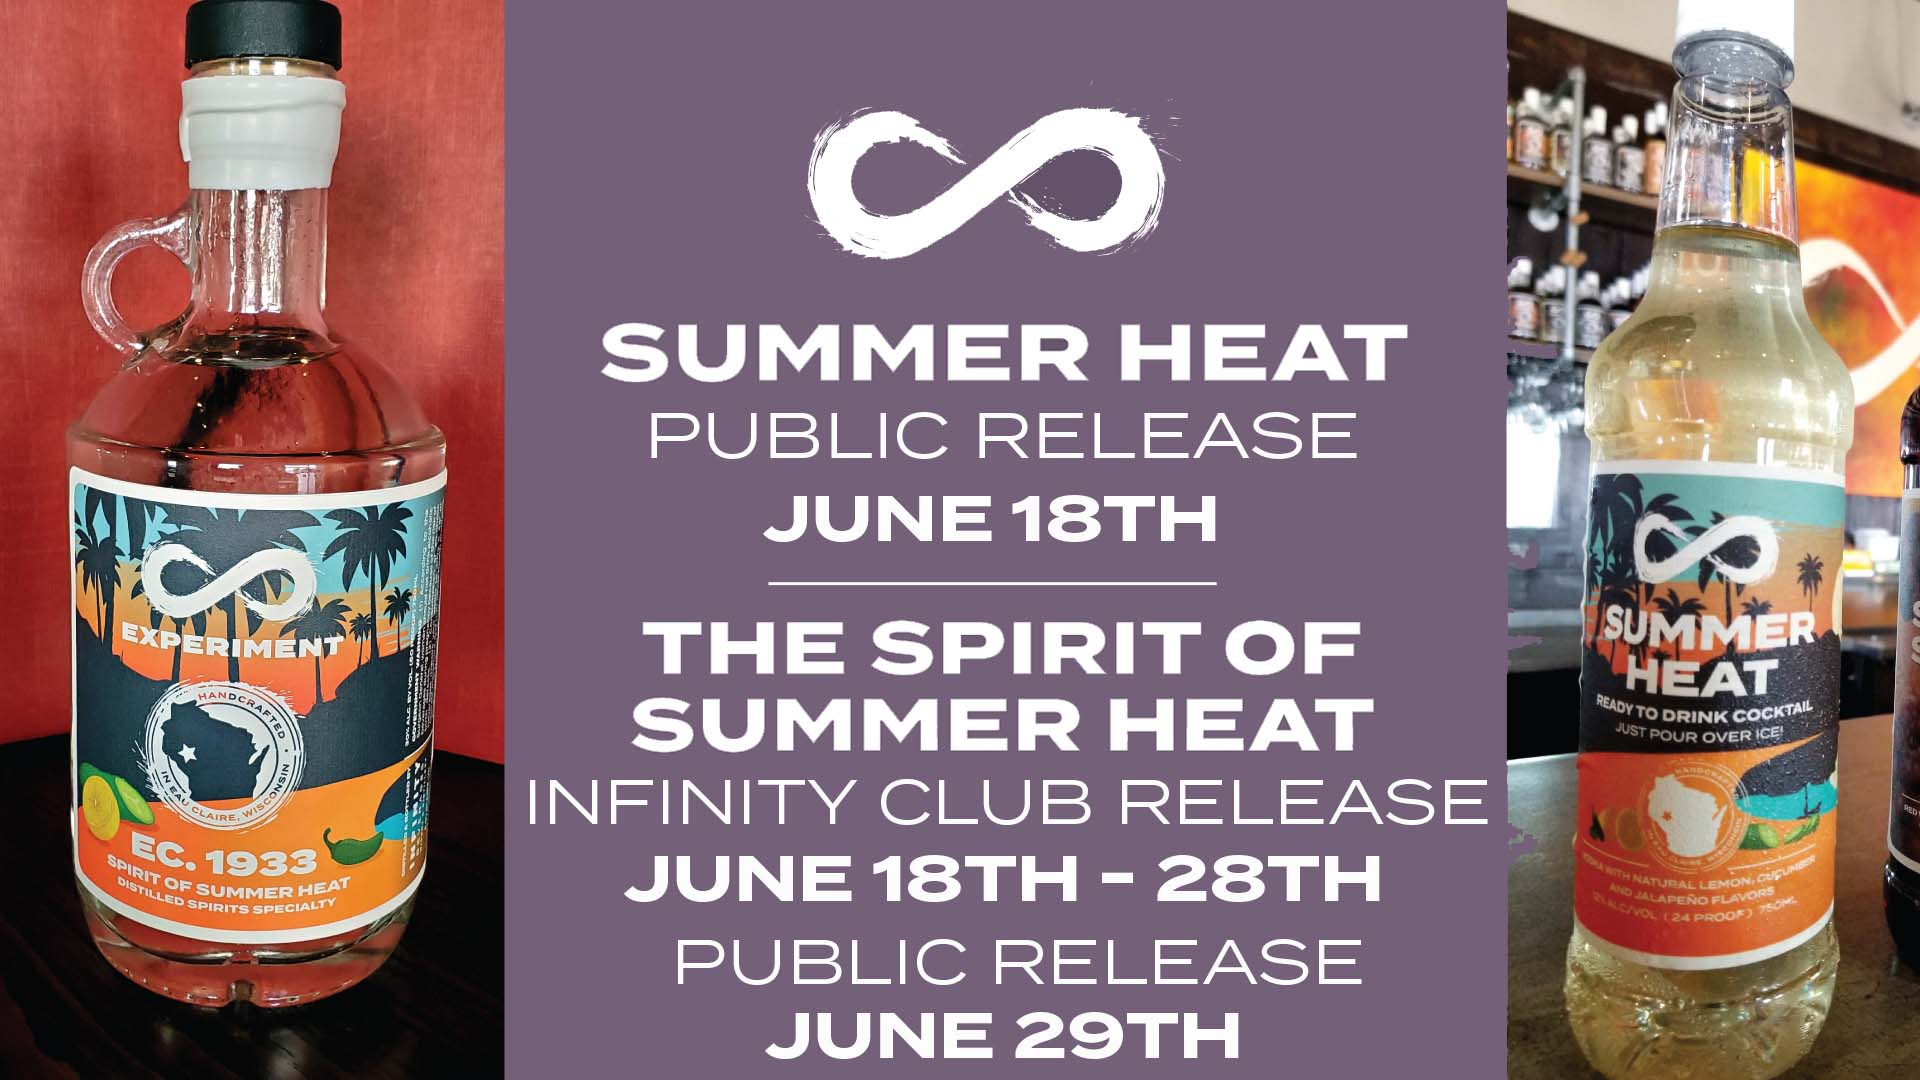 SUMMER HEAT AND SPIRIT OF SUMMER HEAT RELEASE